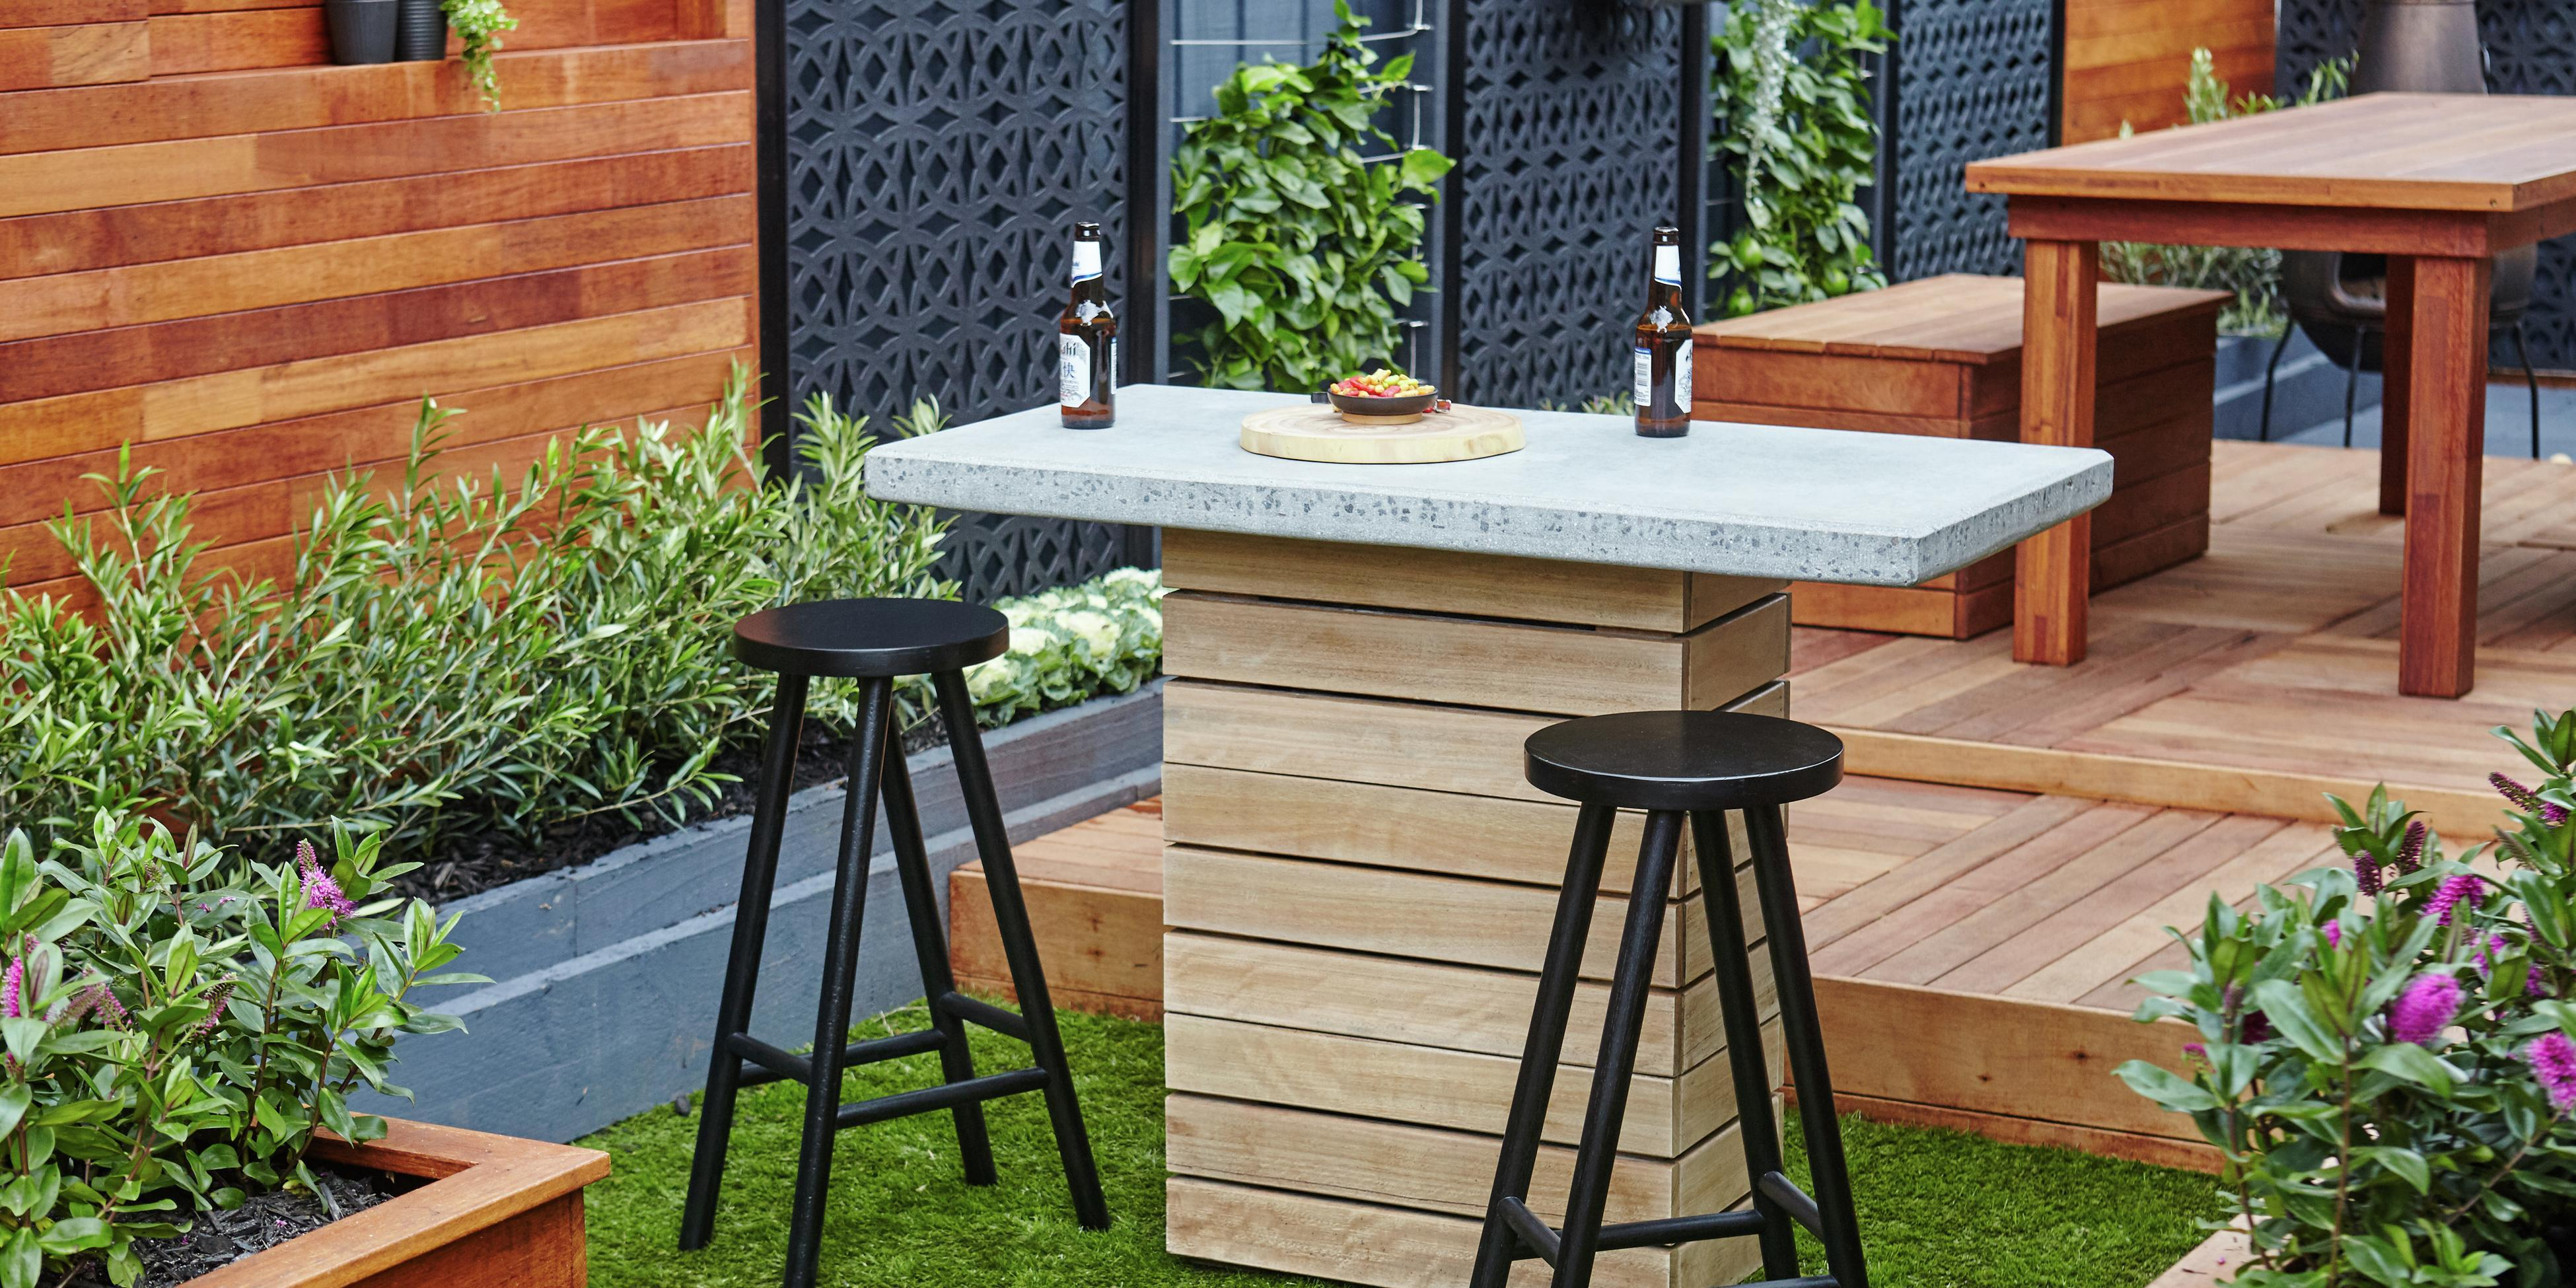 Backyard with timber decking and a small bar